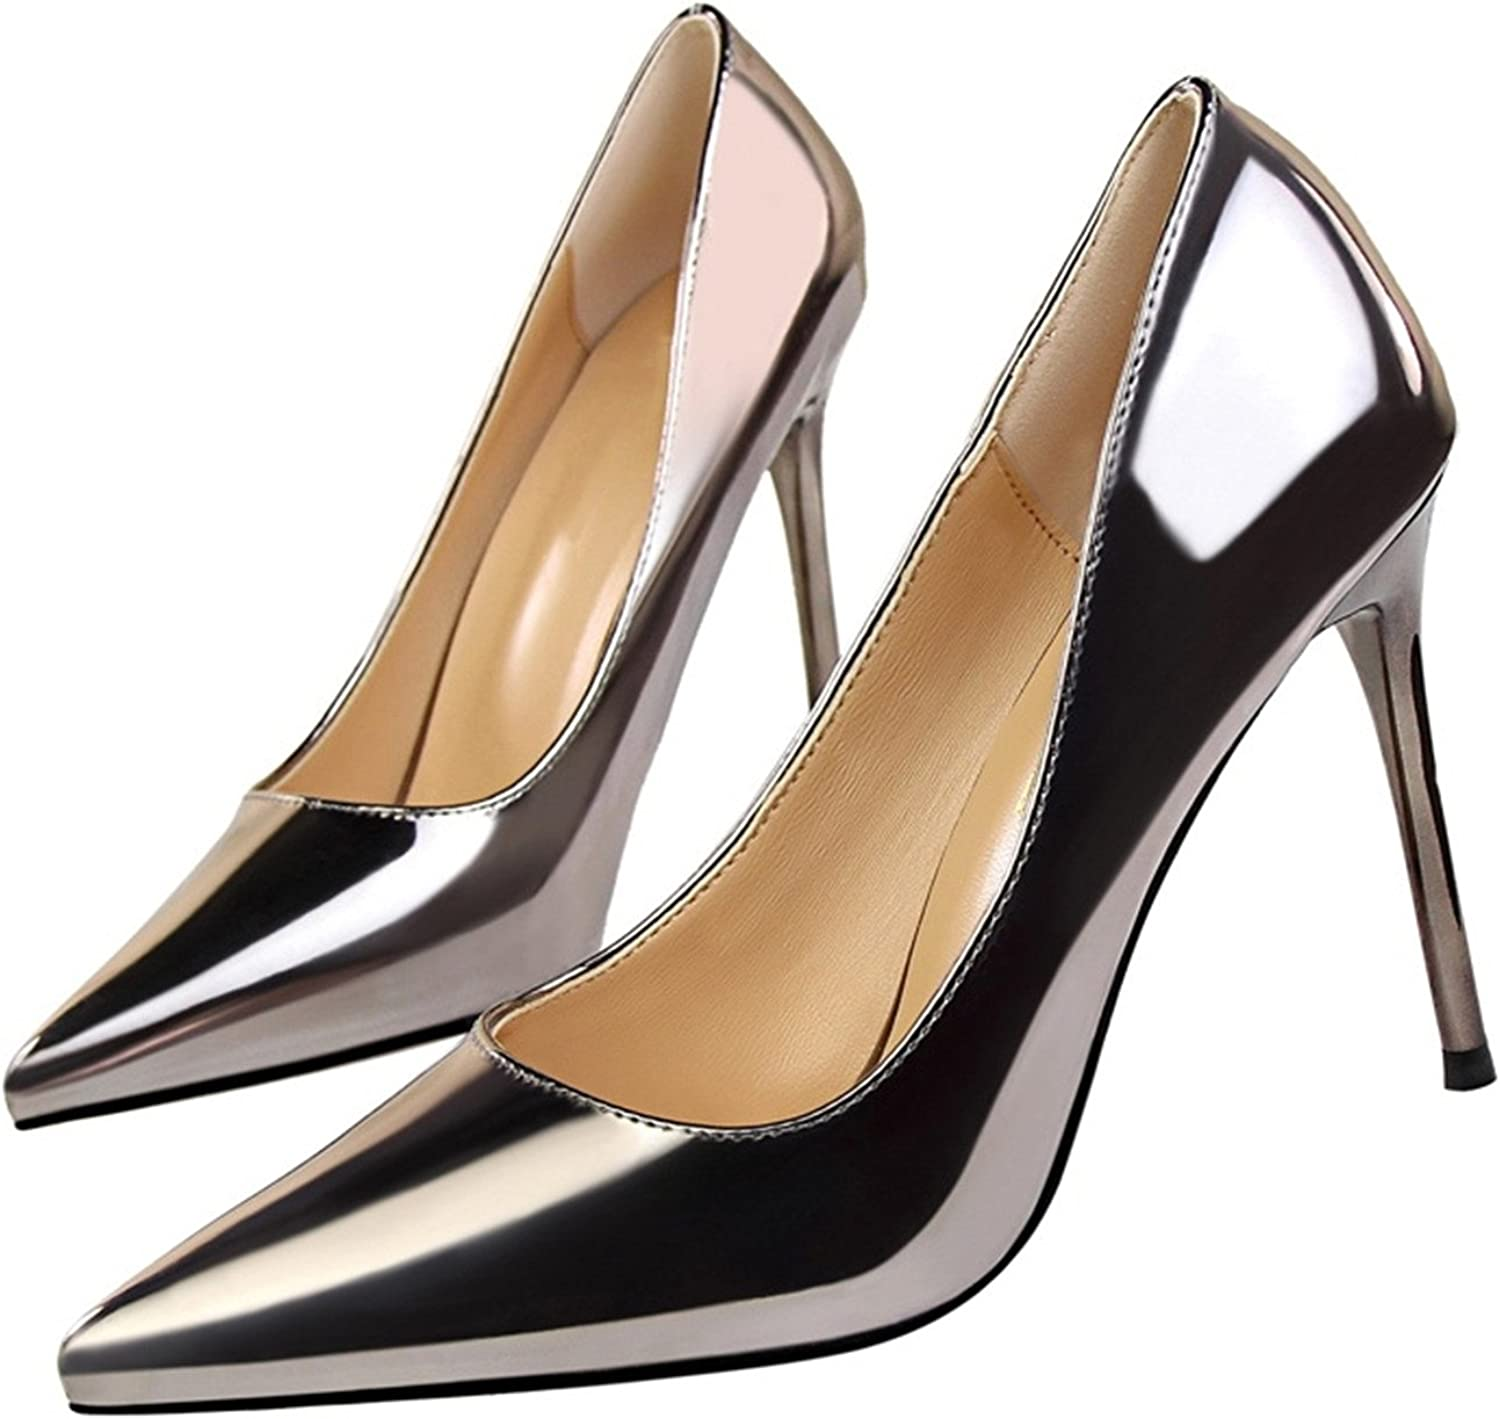 2018 Woman's shoes Women's Pumps Pointed Toe High Heel Stiletto Classic Pumps Silver Closed Toe Pumps Prom shoes White